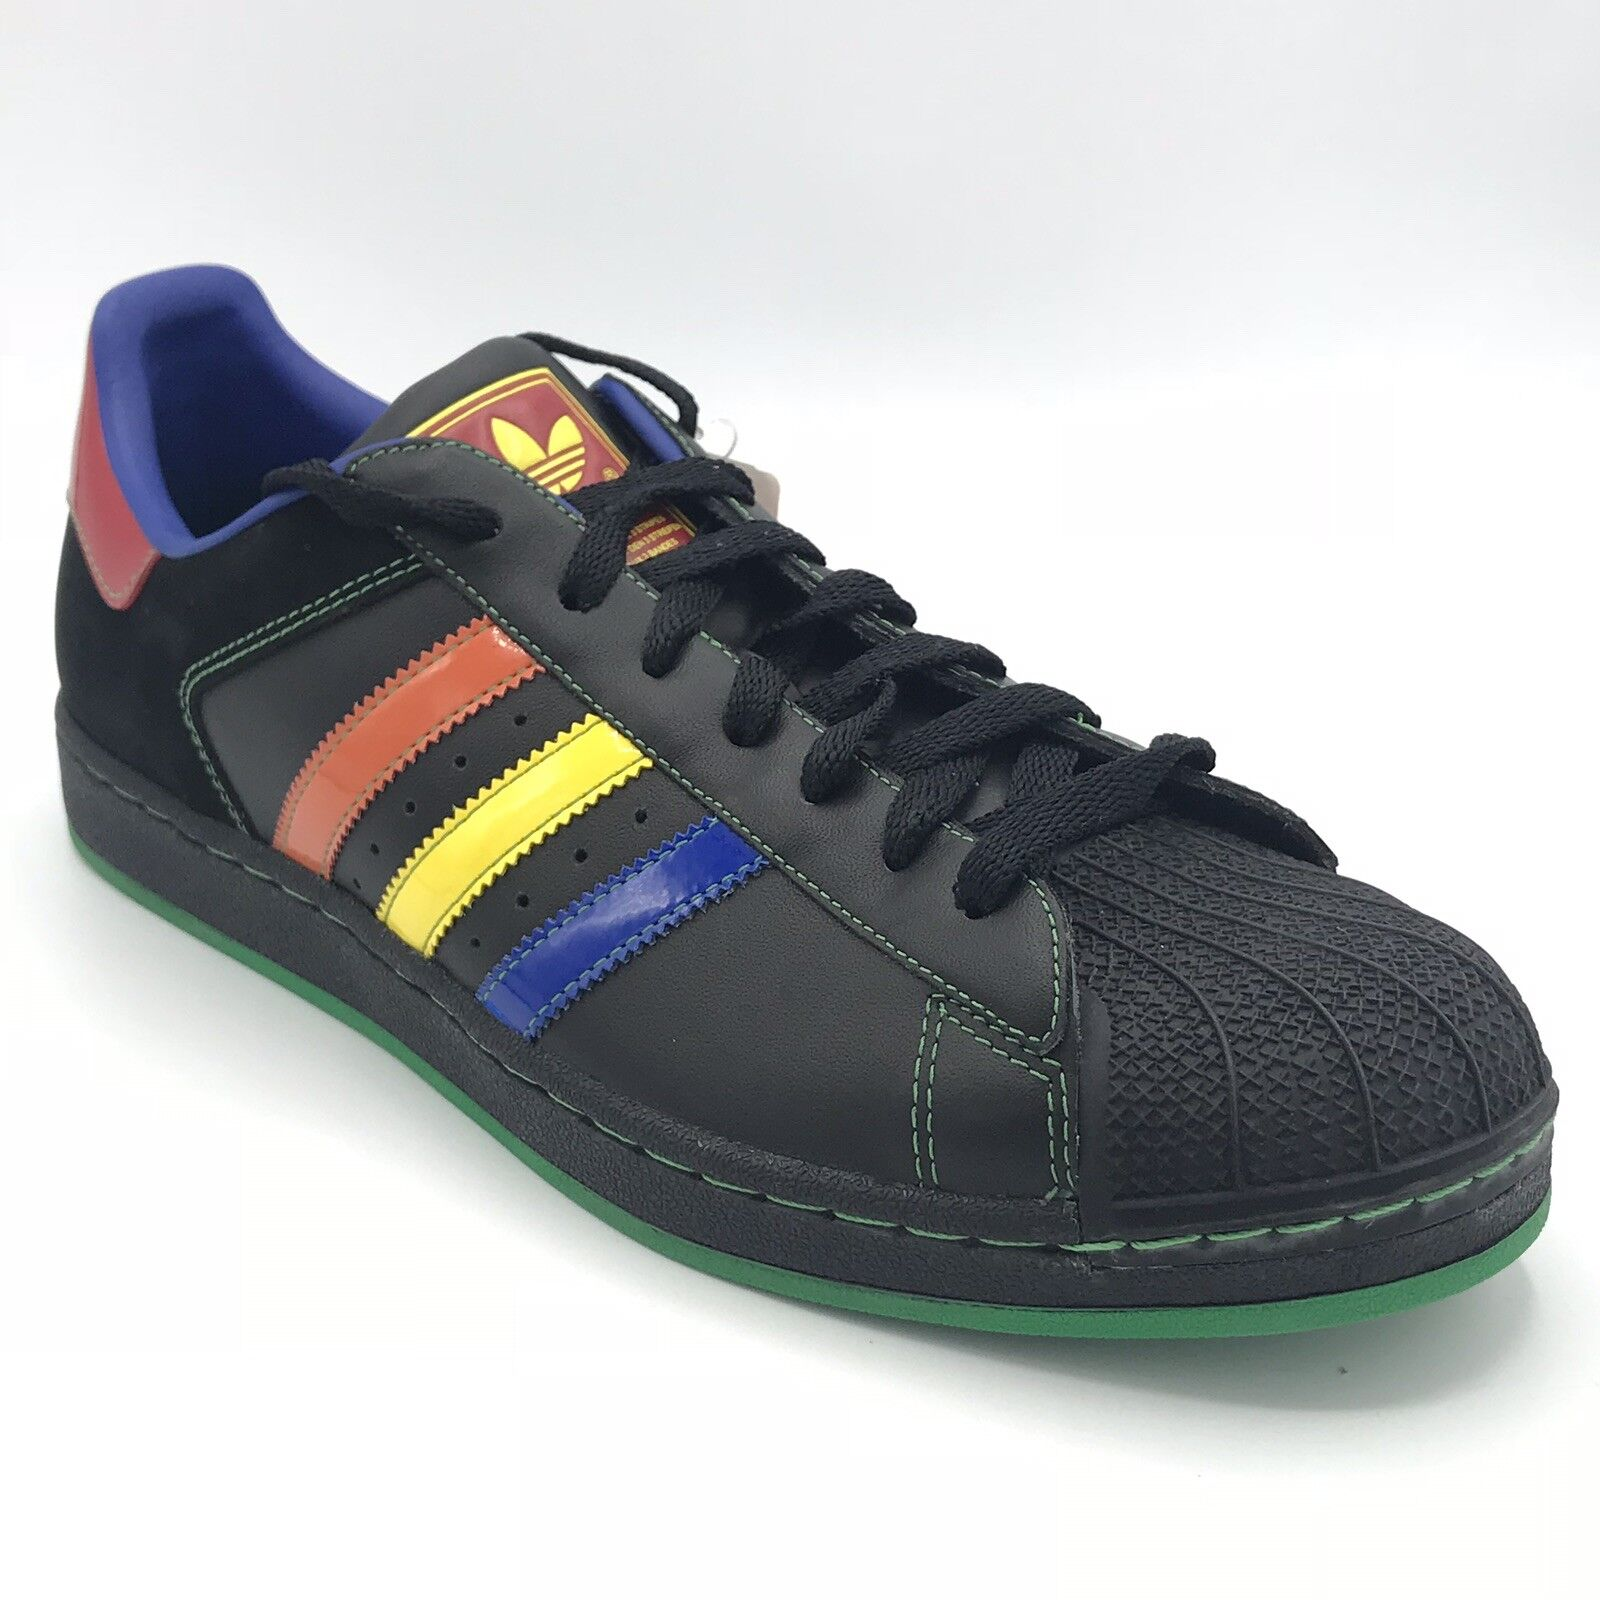 Adidas Superstar Sneakers shoes Black bluee Red orange Yellow Green 045887 US 12